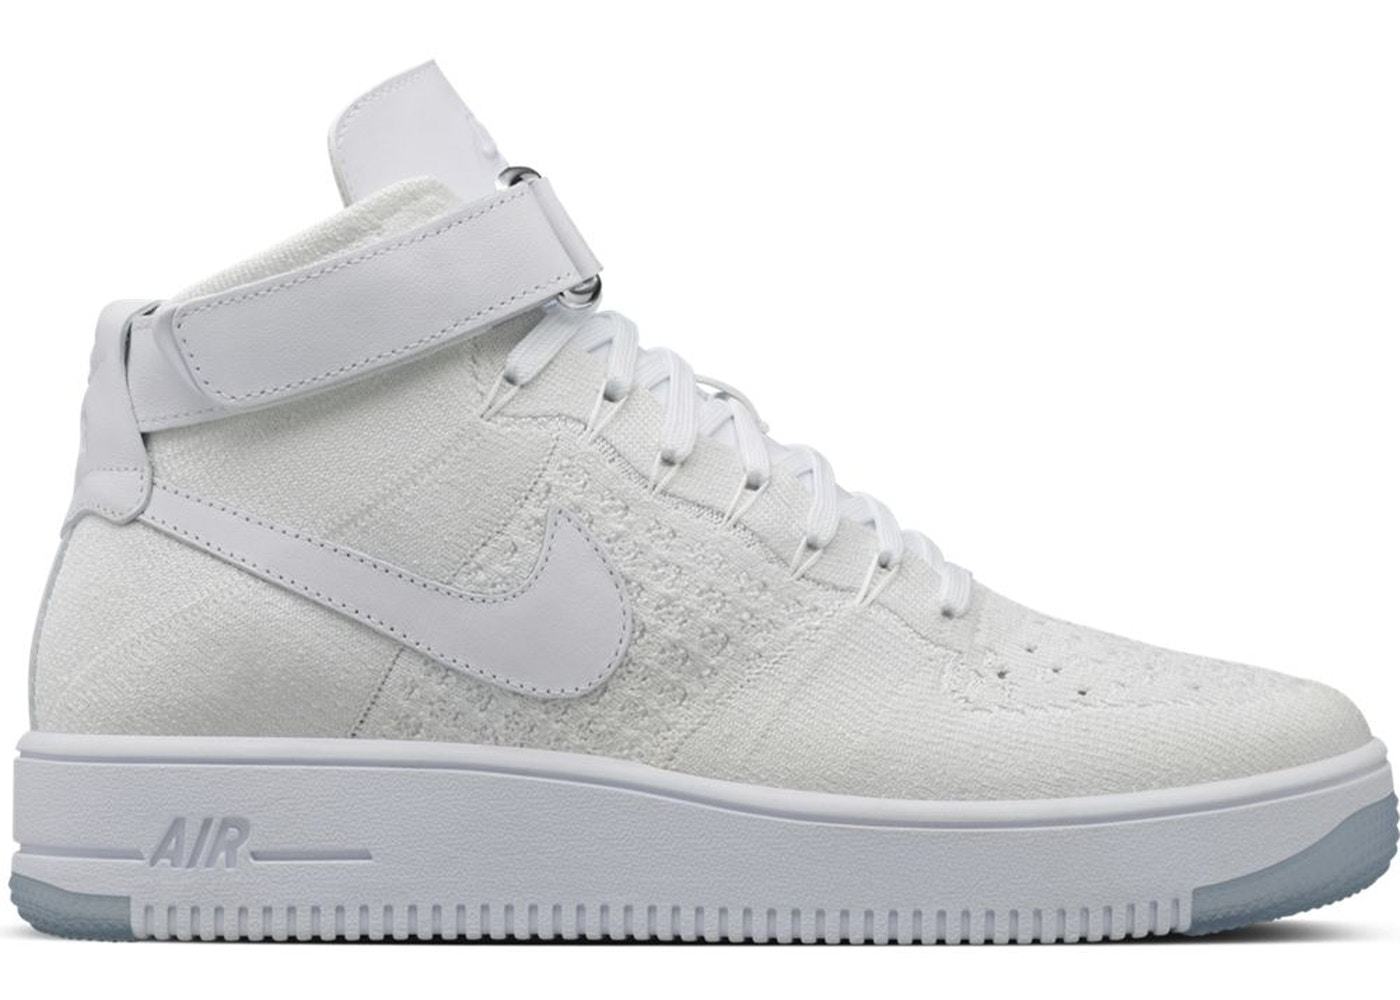 new arrival 909d8 bddf8 Air Force 1 Ultra Flyknit Mid Triple White